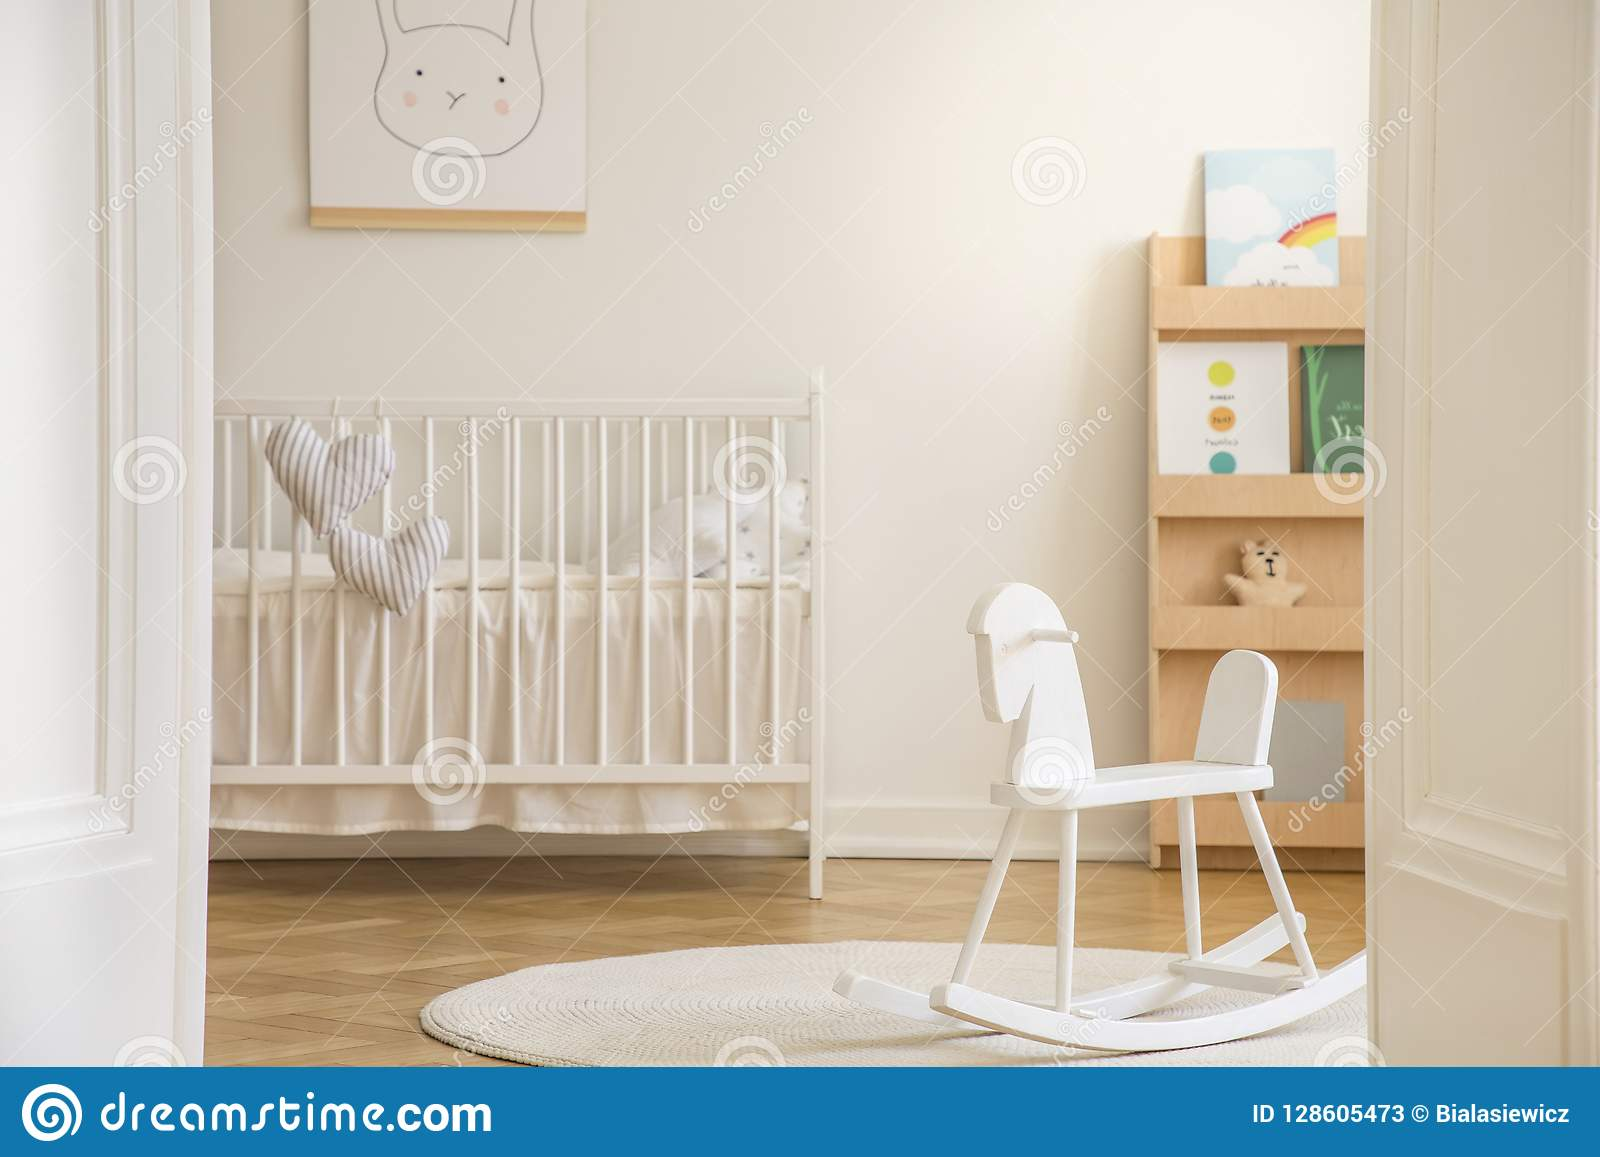 Rocking horse on rug in white kid`s bedroom interior with rabbit poster above cradle